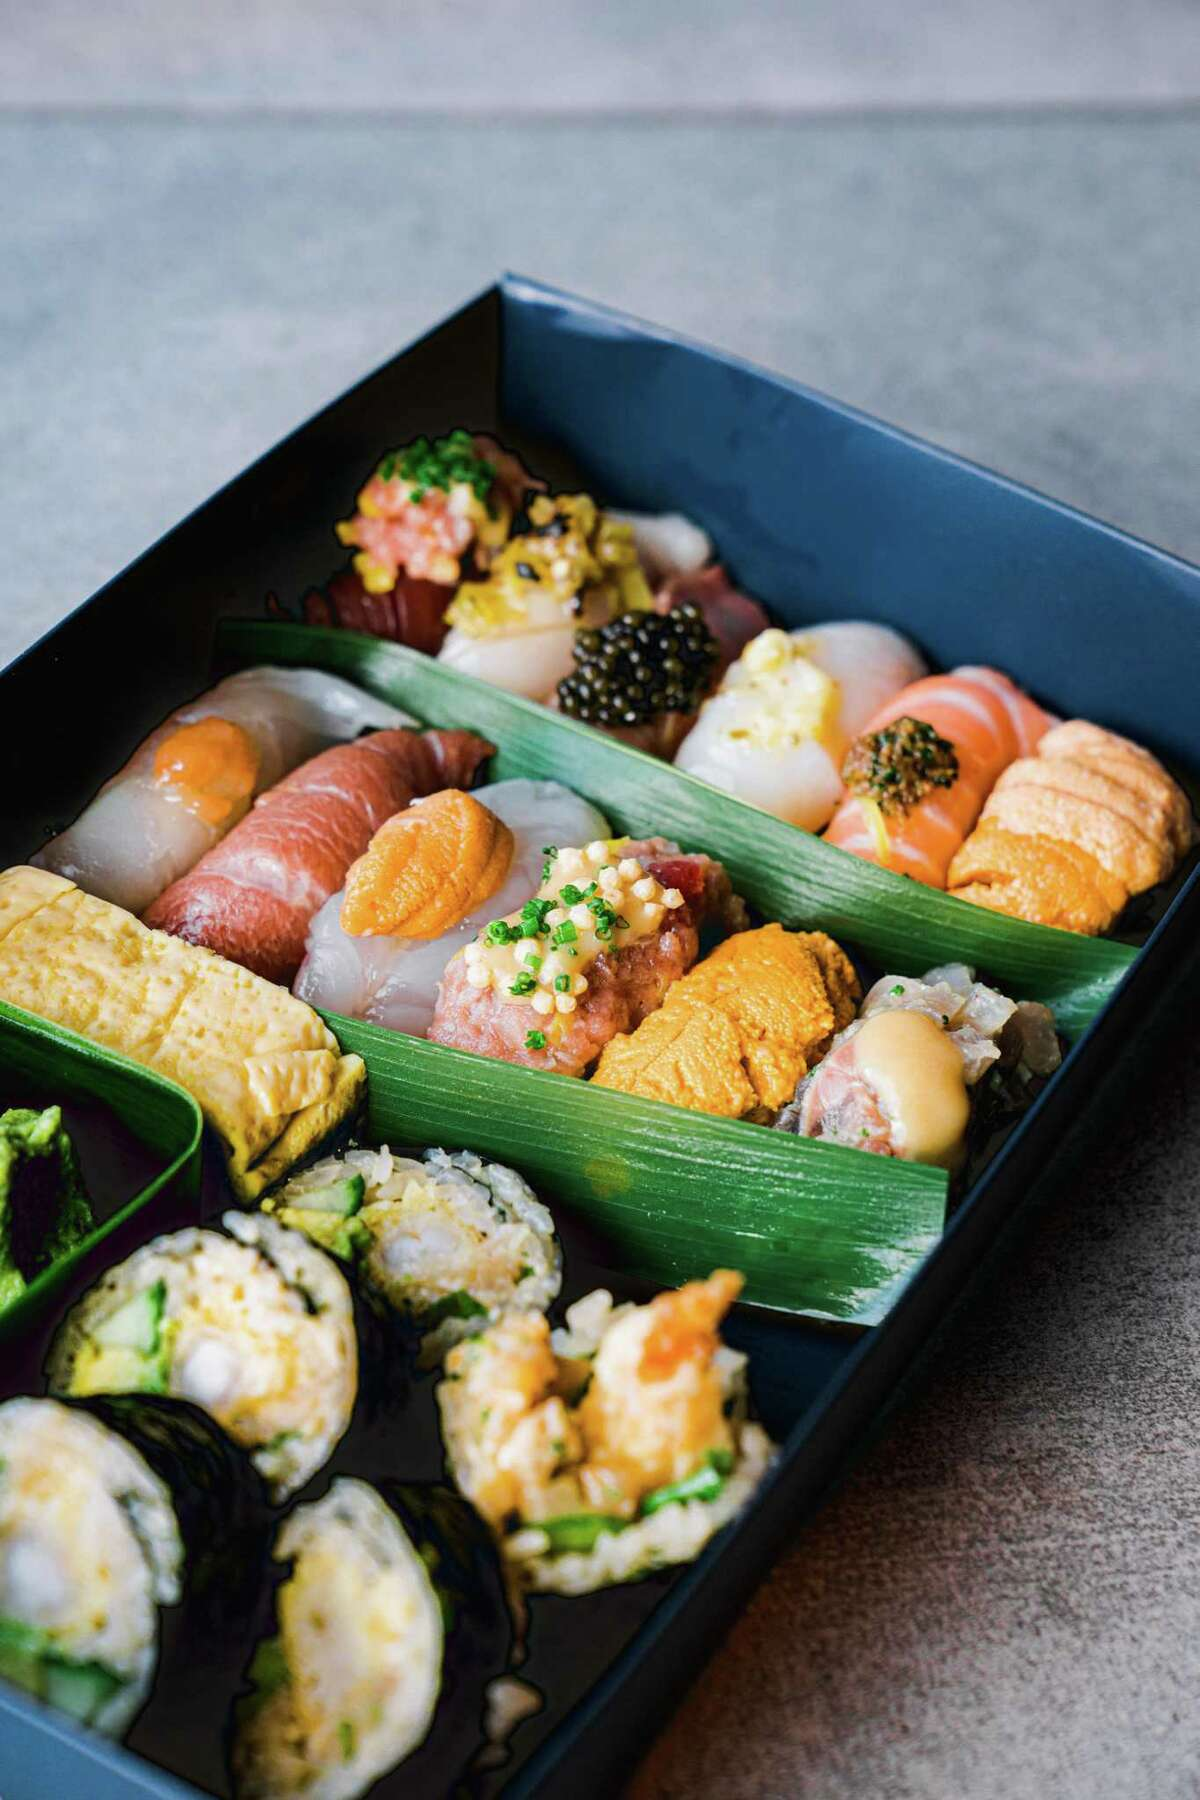 Kissaki will open for delivery and takeout Jan. 27, the fifth outpost of owner Gary Kanfer's culinary experience featuring Japanese omakase. It's the first Connecticut location, joining others in Manhattan, Long Island City and the Hamptons.